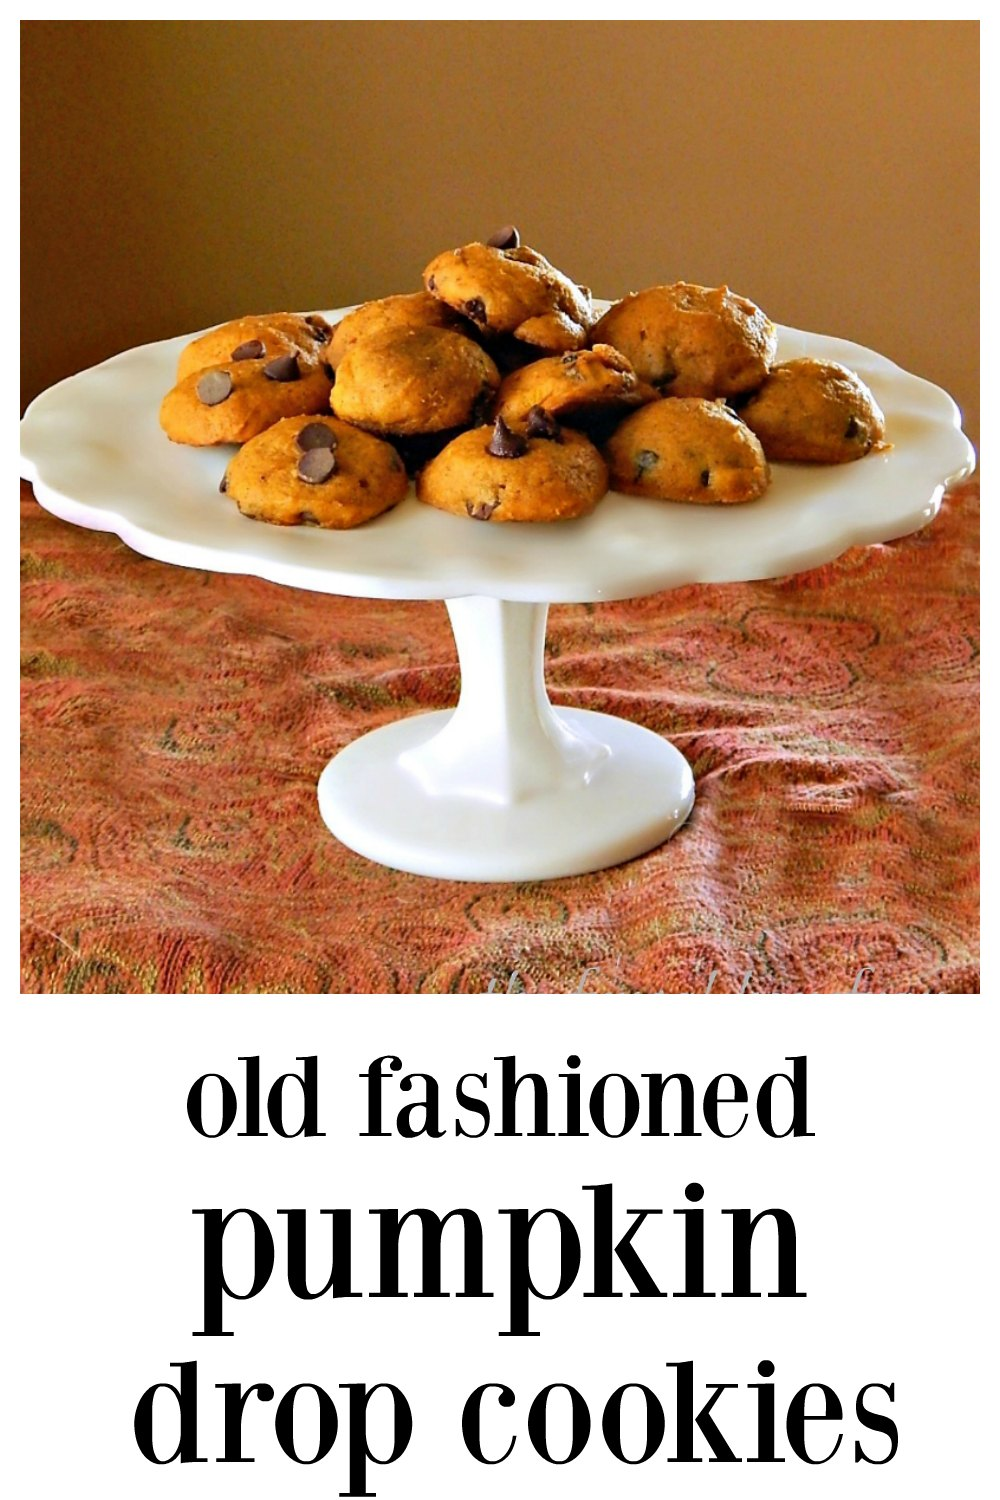 These easy mix in one bowl by hand Pumpkin Drop Cookies were a childhood fave, Start a tradition and introduce the next generation to them! Makes about 60 small cookies. Add raisins or chocolate chips. #PumpkinCookies #PumpkinDropCookies #PumpkinSpiceCookies